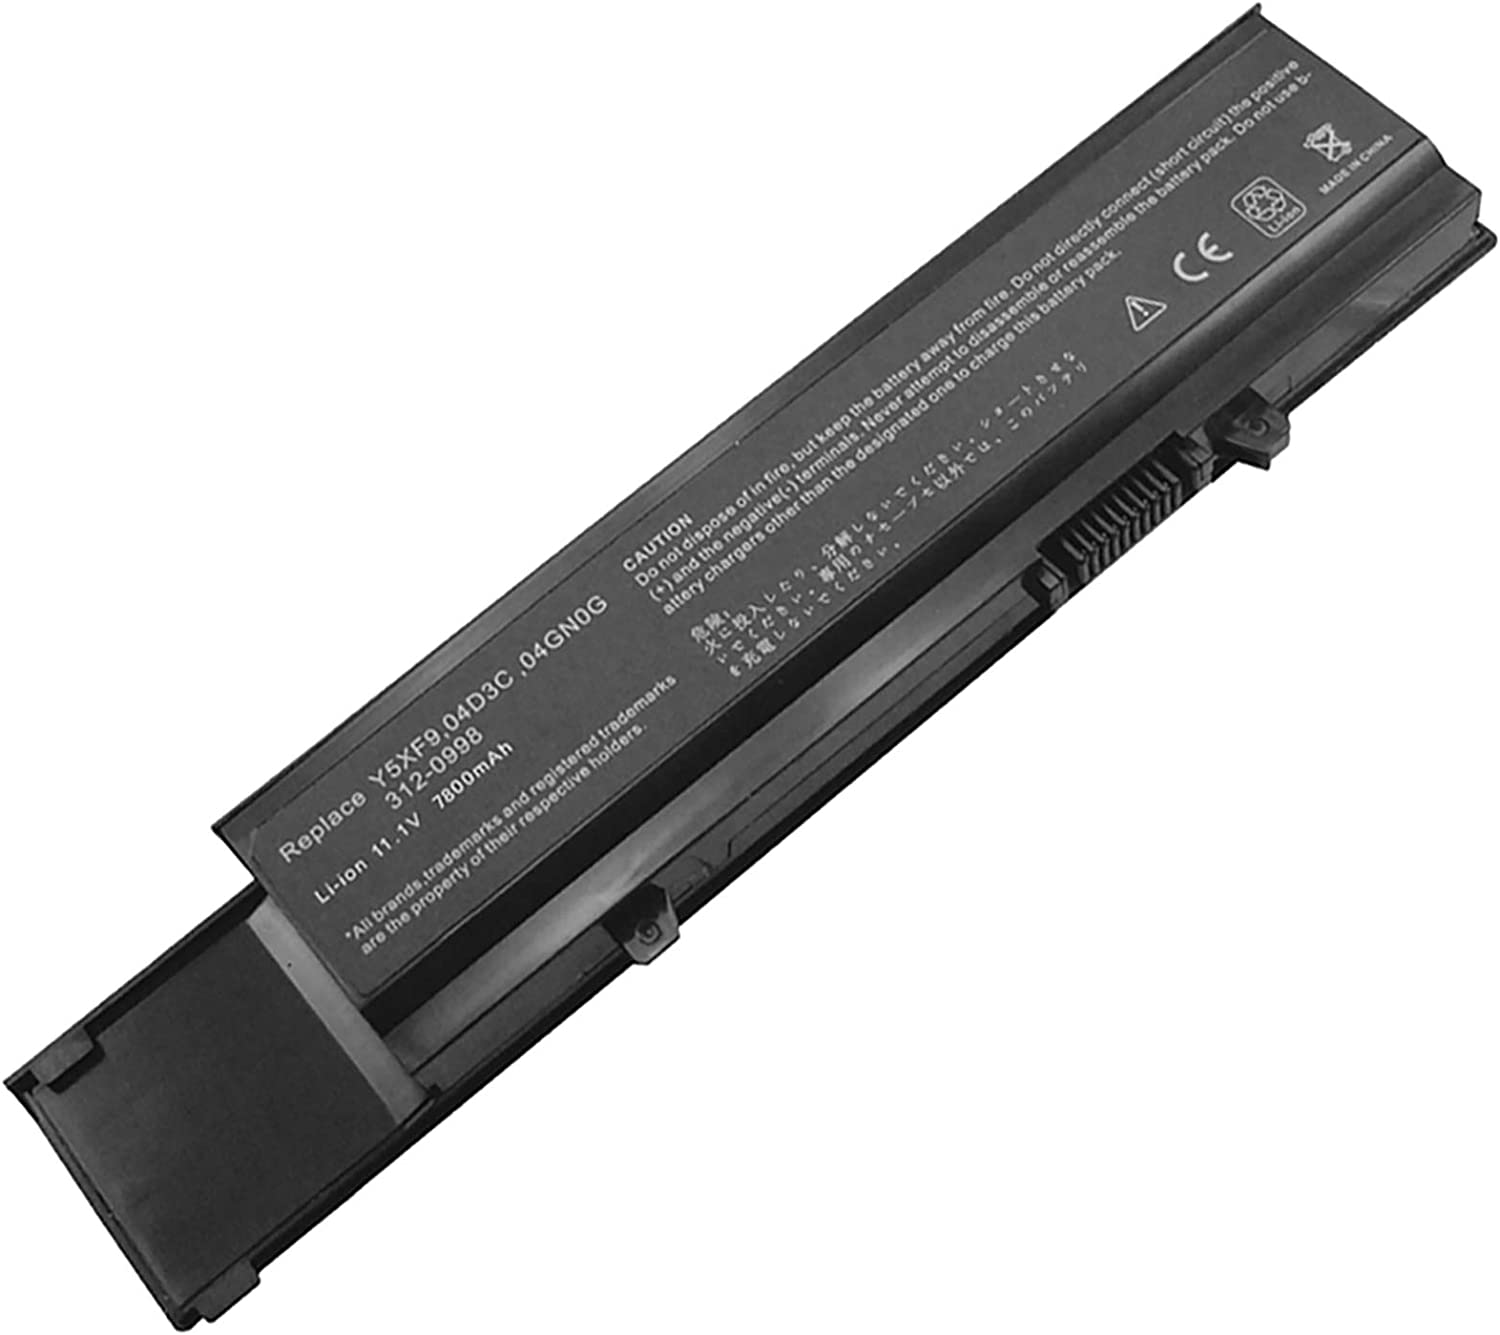 Bay Valley Parts 9-Cell 11.1V 7800mAh New Replacement Laptop Battery for Dell Vostro 3400,Vostro 3500,Vostro 3700